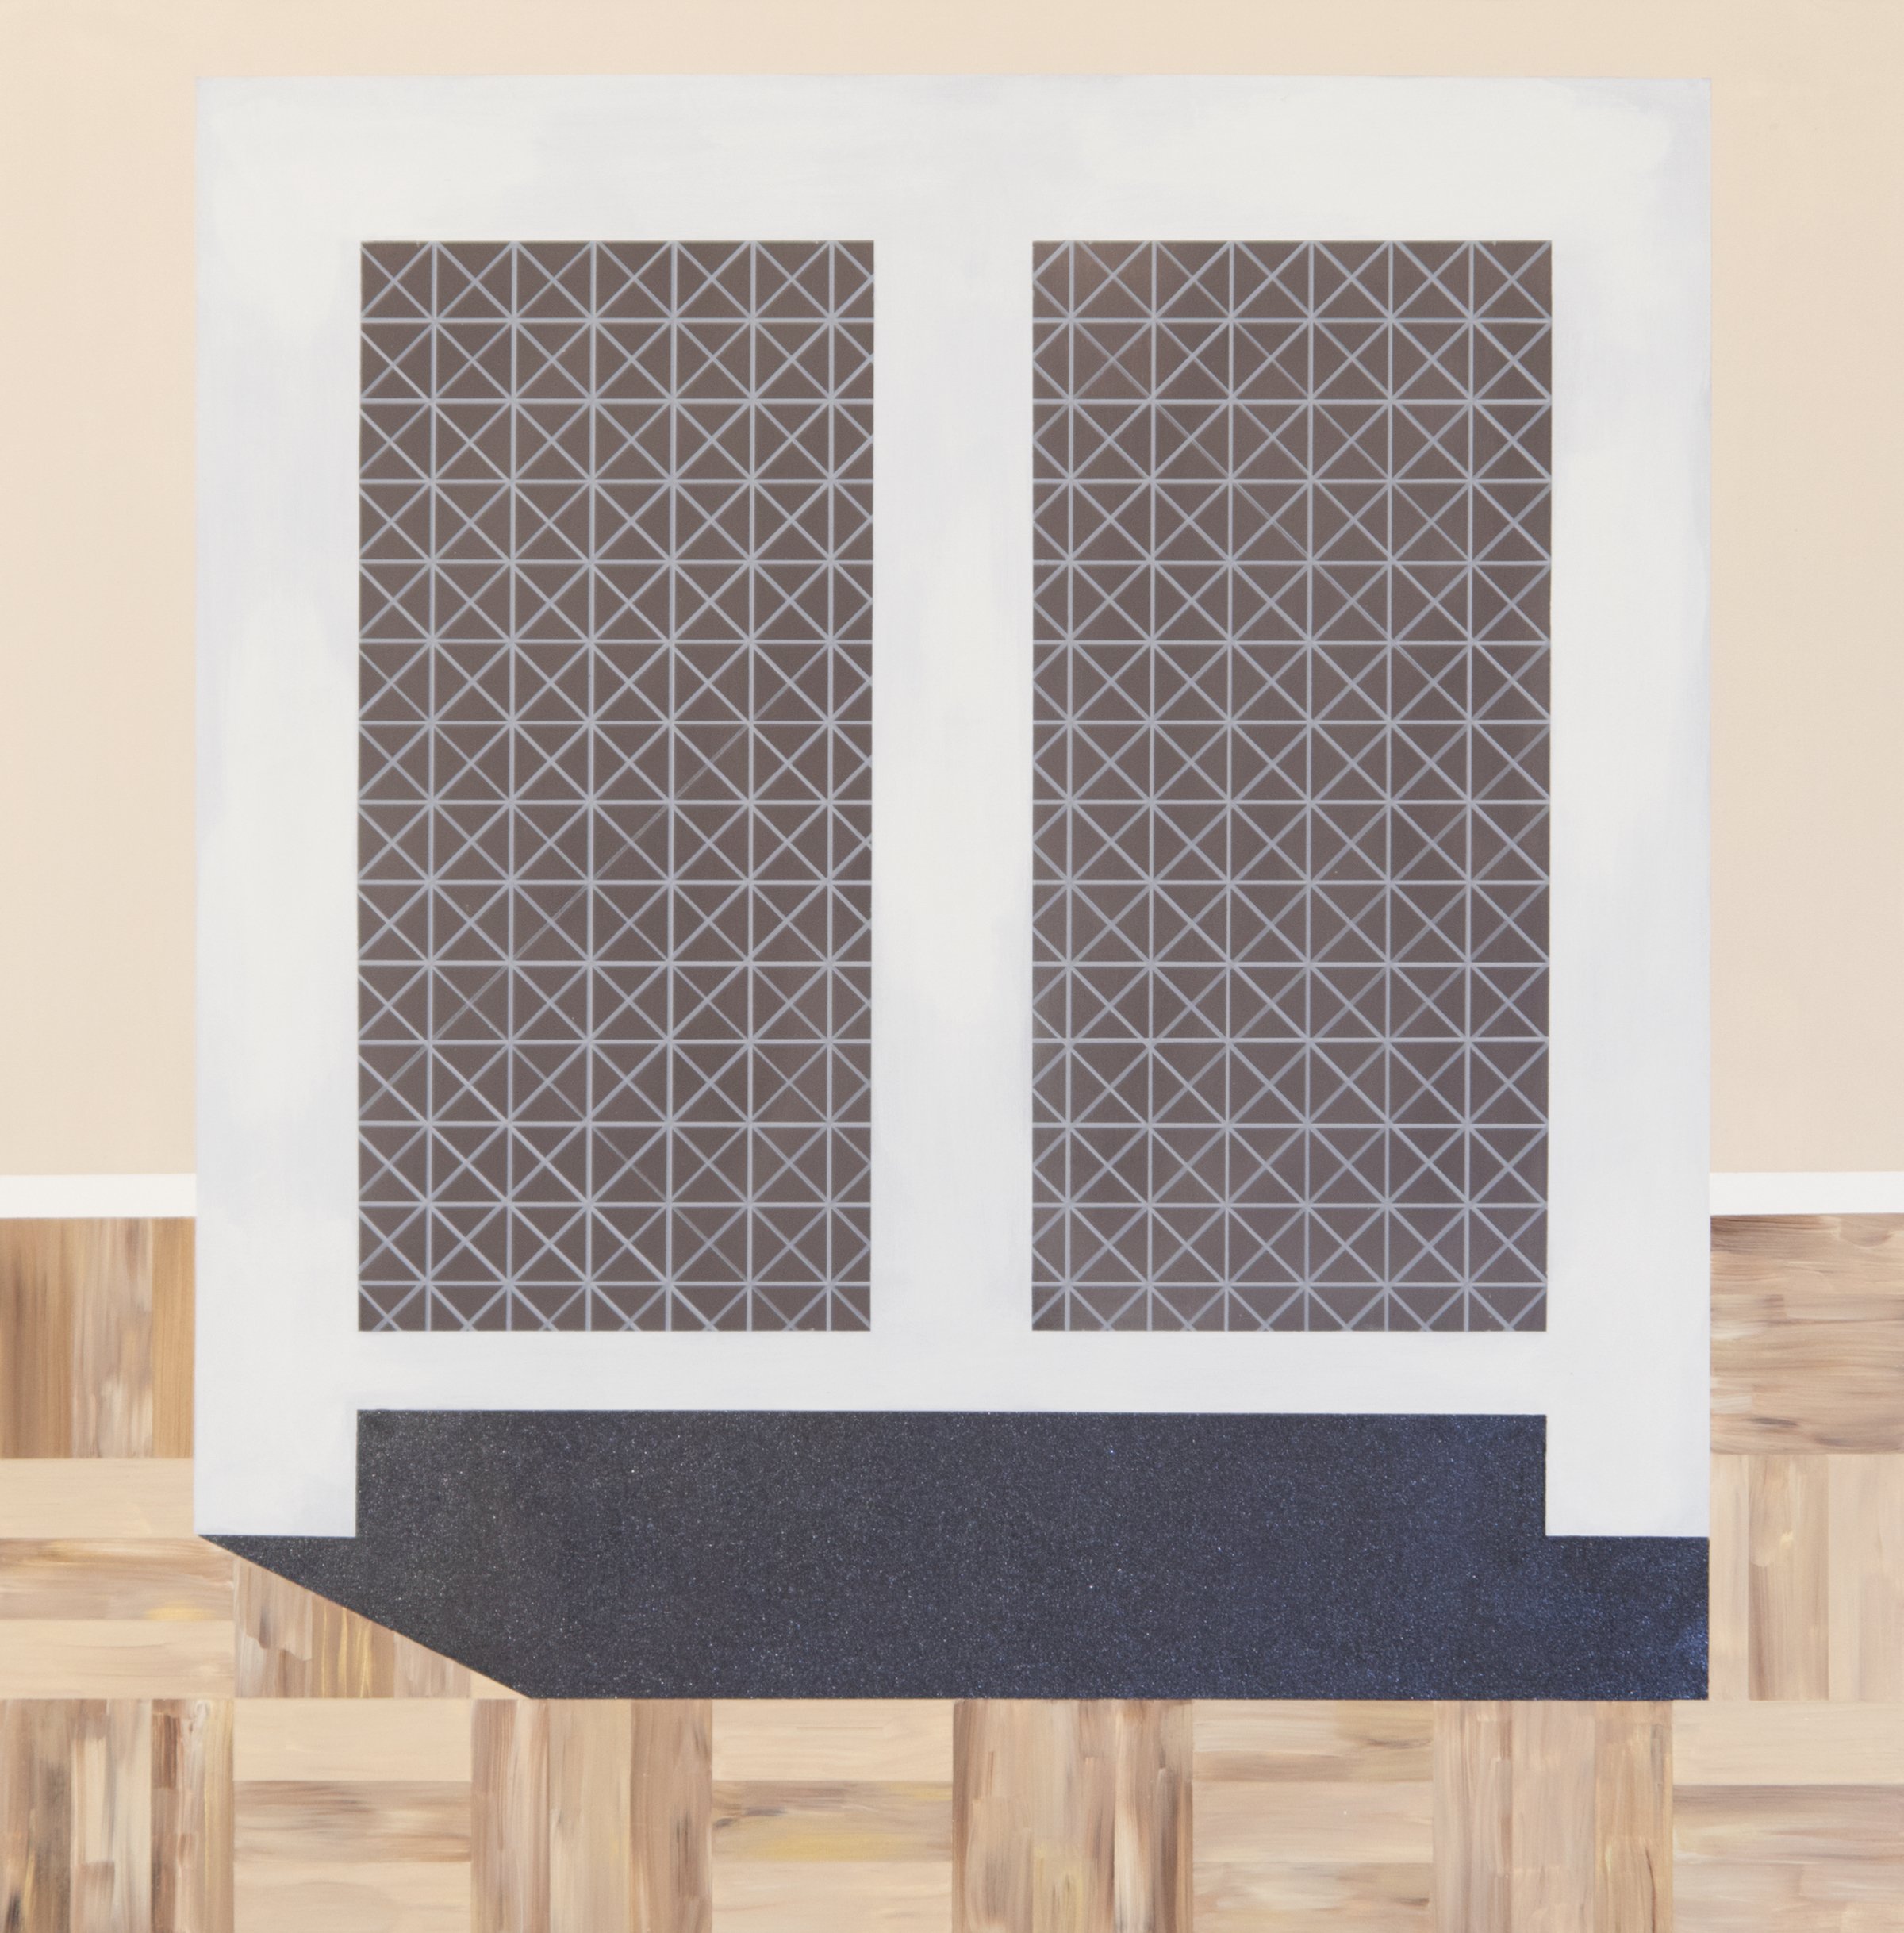 An excerpt from Ian Etter's essay:   Executed prior to Laube's time in Wales, the works comprising Glint investigate the theme of transformation. In Cormere, Laube only includes what is essential: A stoic radiator hovers above the floorboards and wall, fixed with a matching pair of rectangular vents. The viewer's gaze circles a matrix of lines forming a mesh-like structure, without breaking past the picture plane. Absence of spatial depth keeps us on the painting's surface. Embedded within the static, compressed perspective is a latent energy, capable of coalescing into three dimensions, like the closed pages of child's pop-up book.